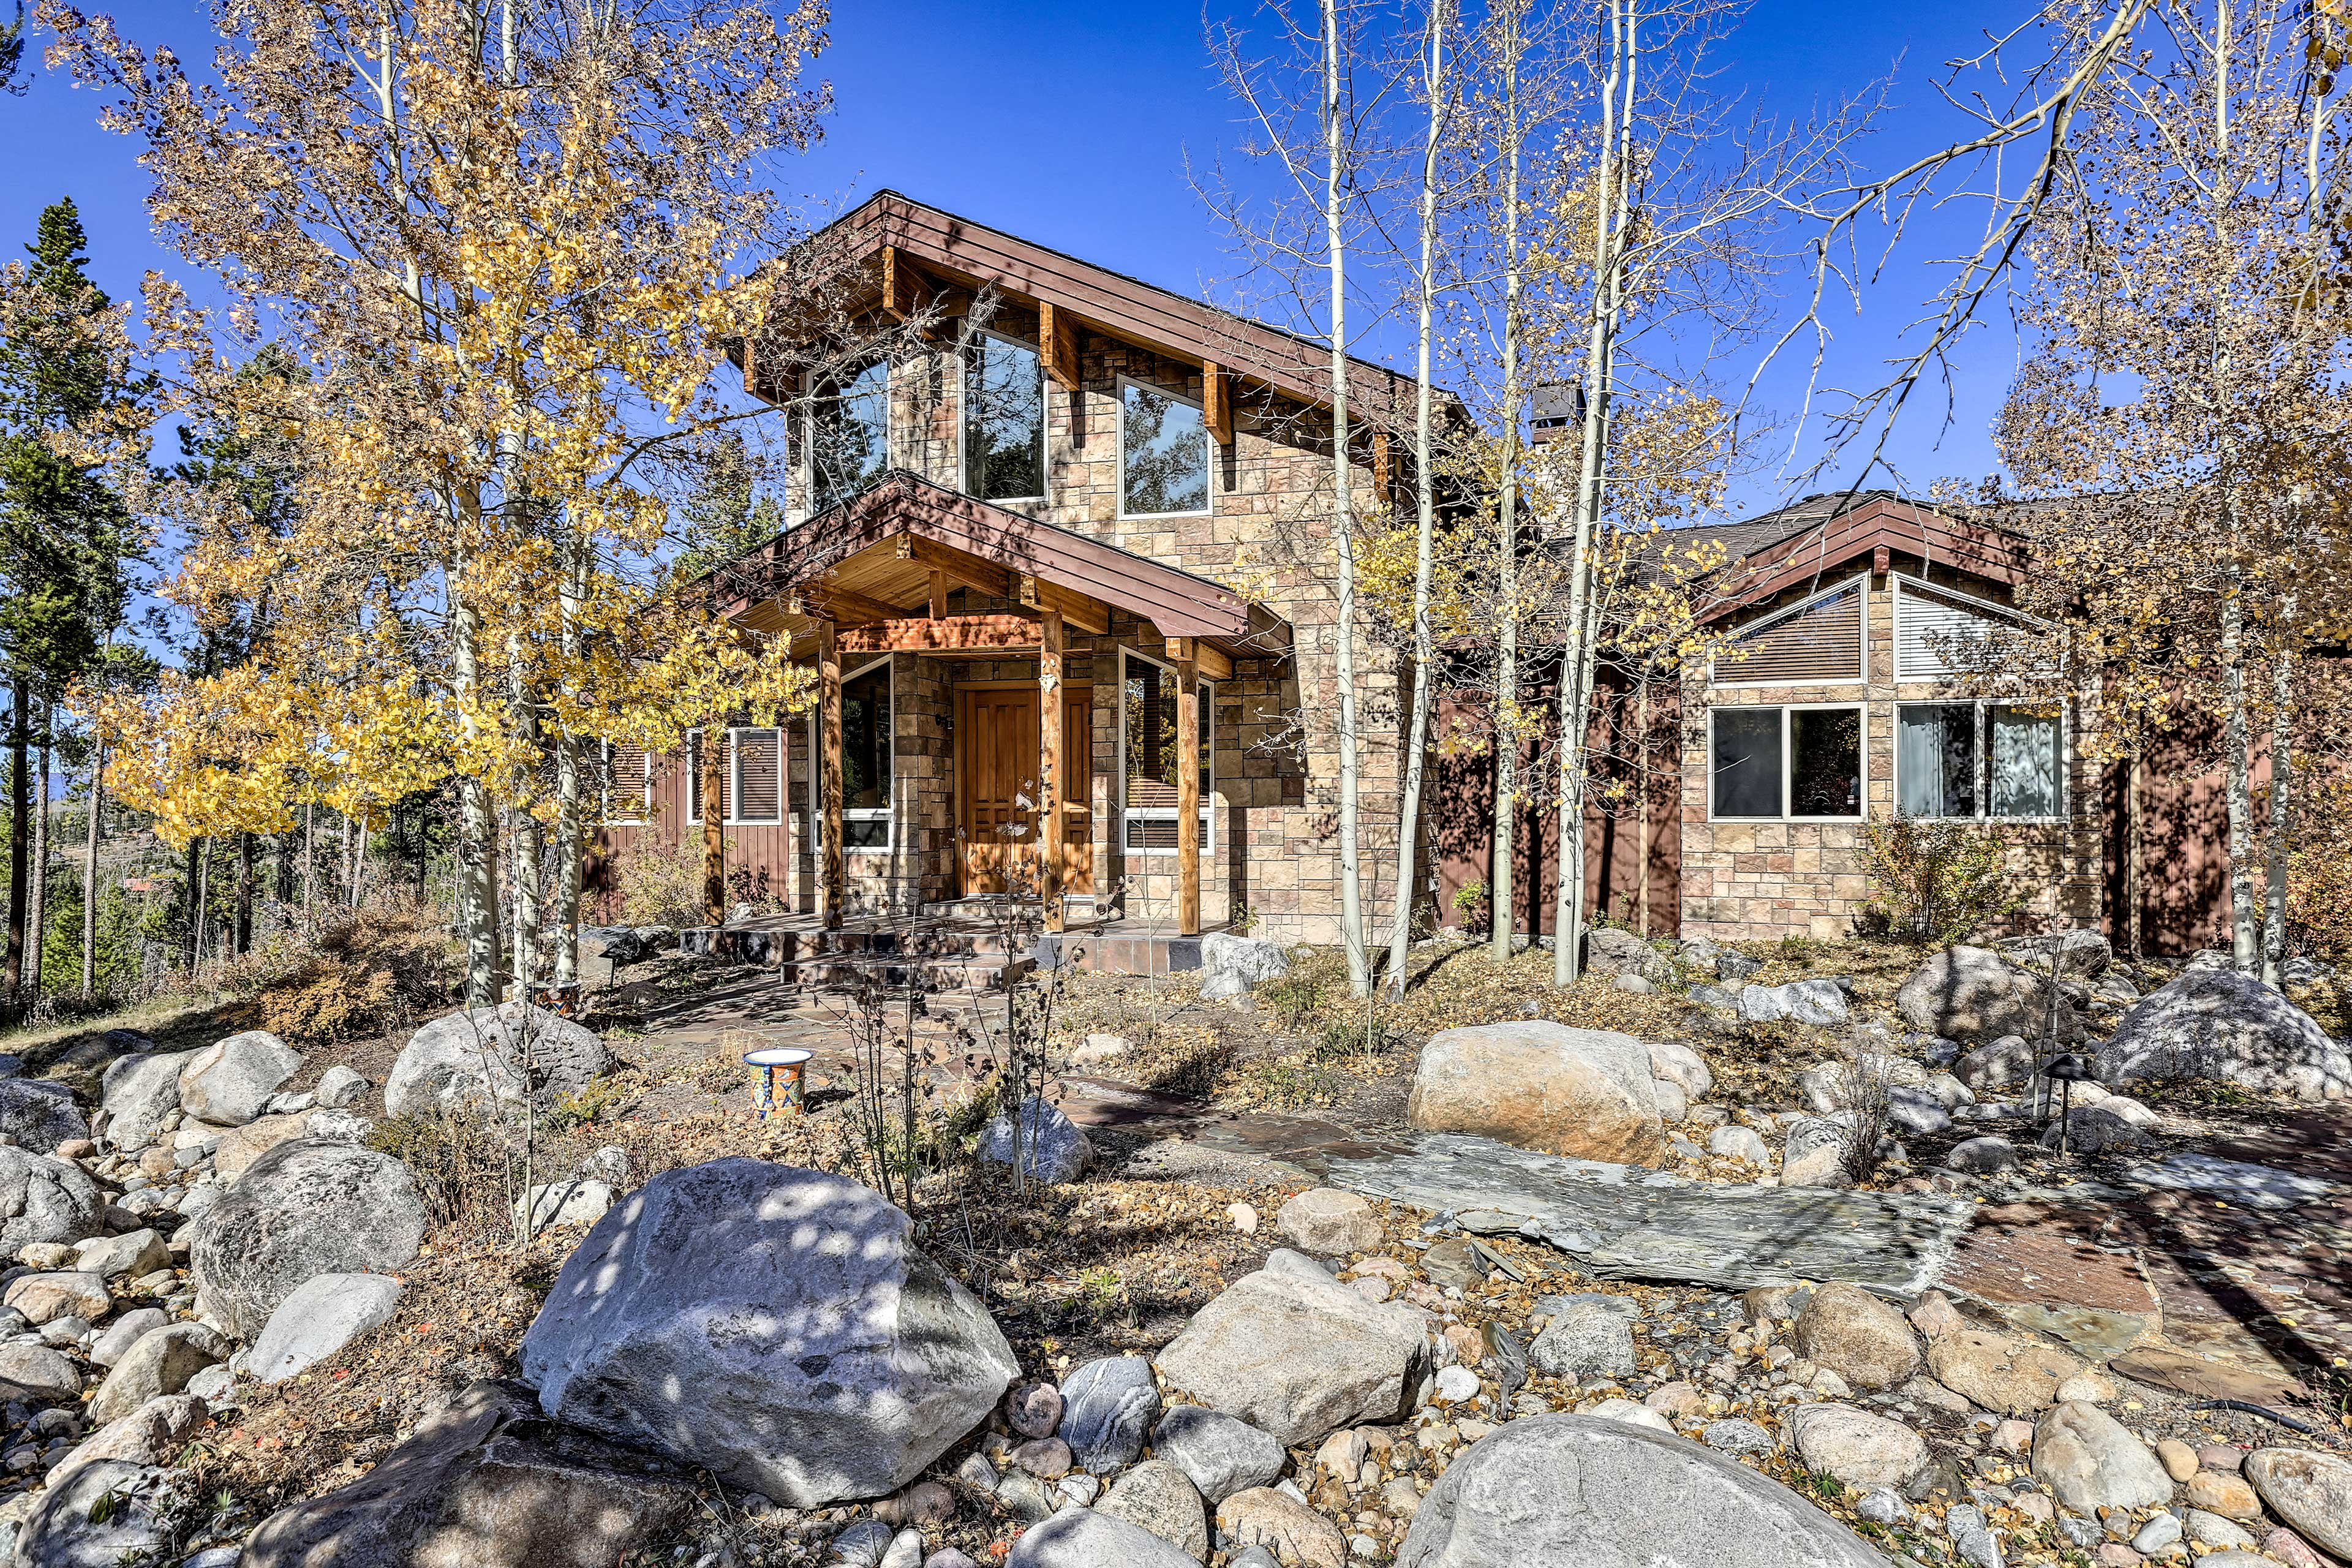 This home features a unique architectural design with 4 bedrooms and 3.5 baths.